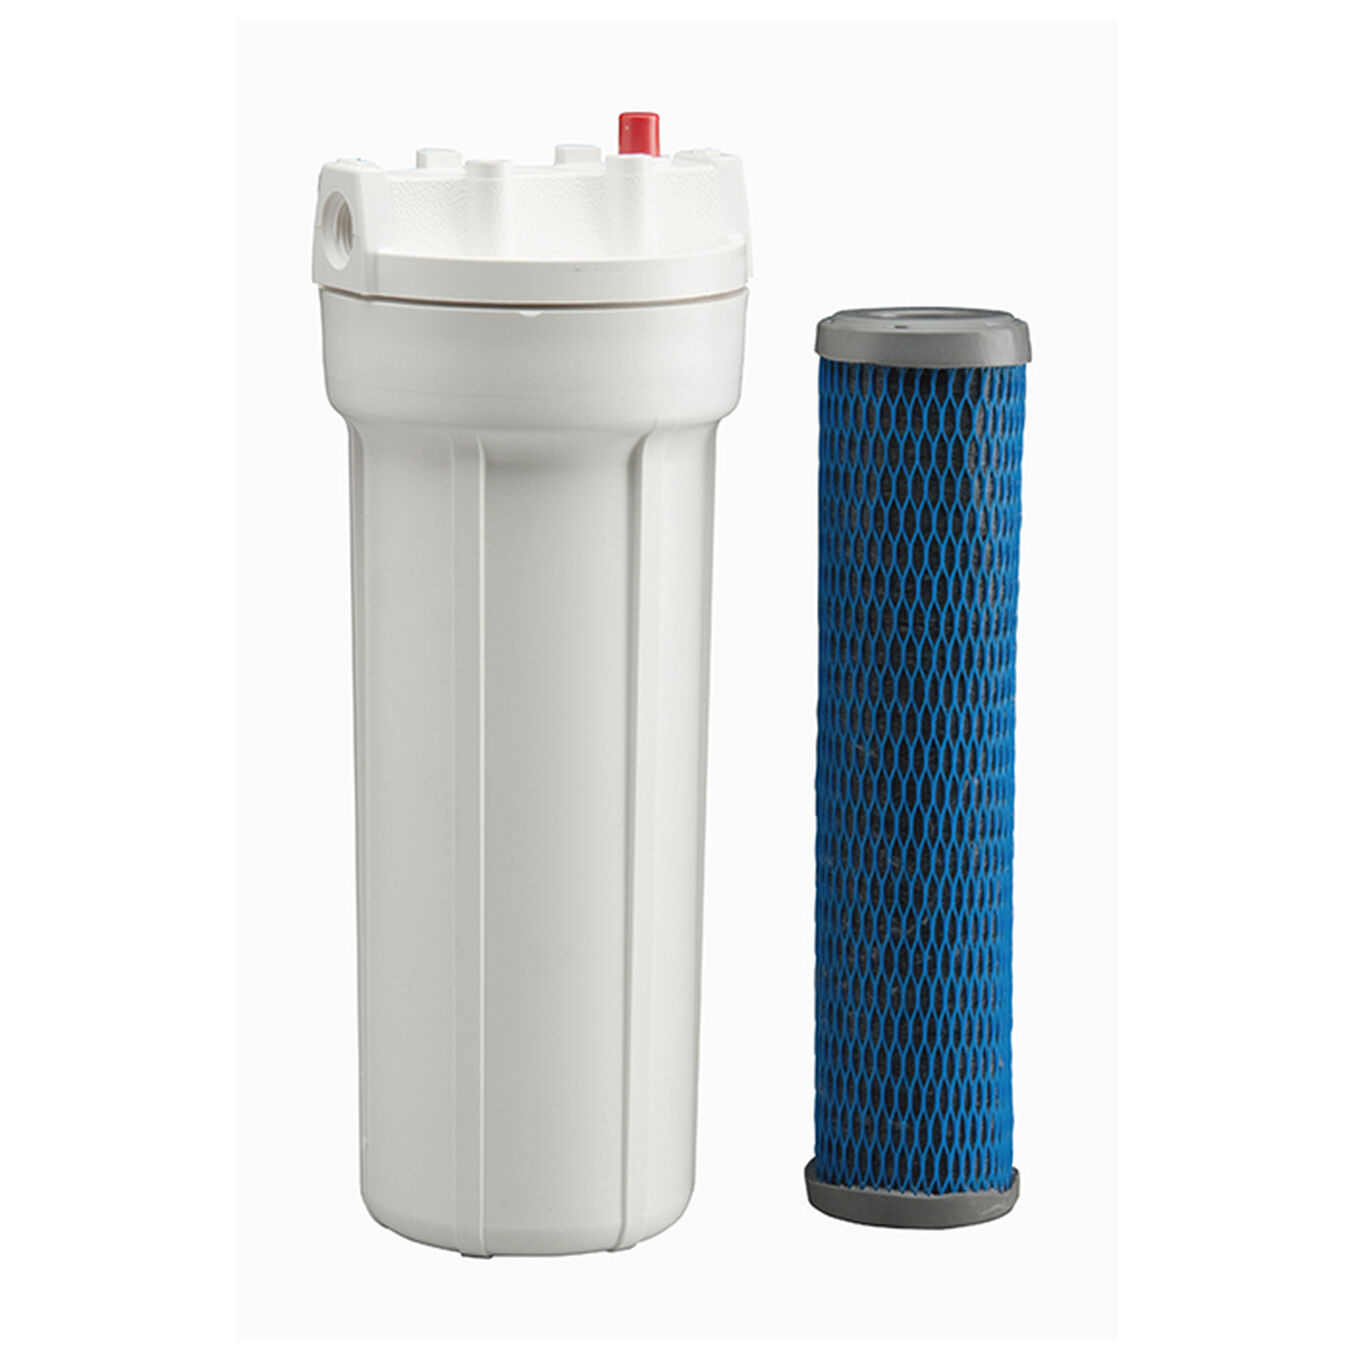 Replacement for Compatible with Culligan RVF-10 Activated Carbon Block Filter Universal 10 inch Filter Compatible with Culligan RVF-10 Exterior Water Filter Denali Pure Brand